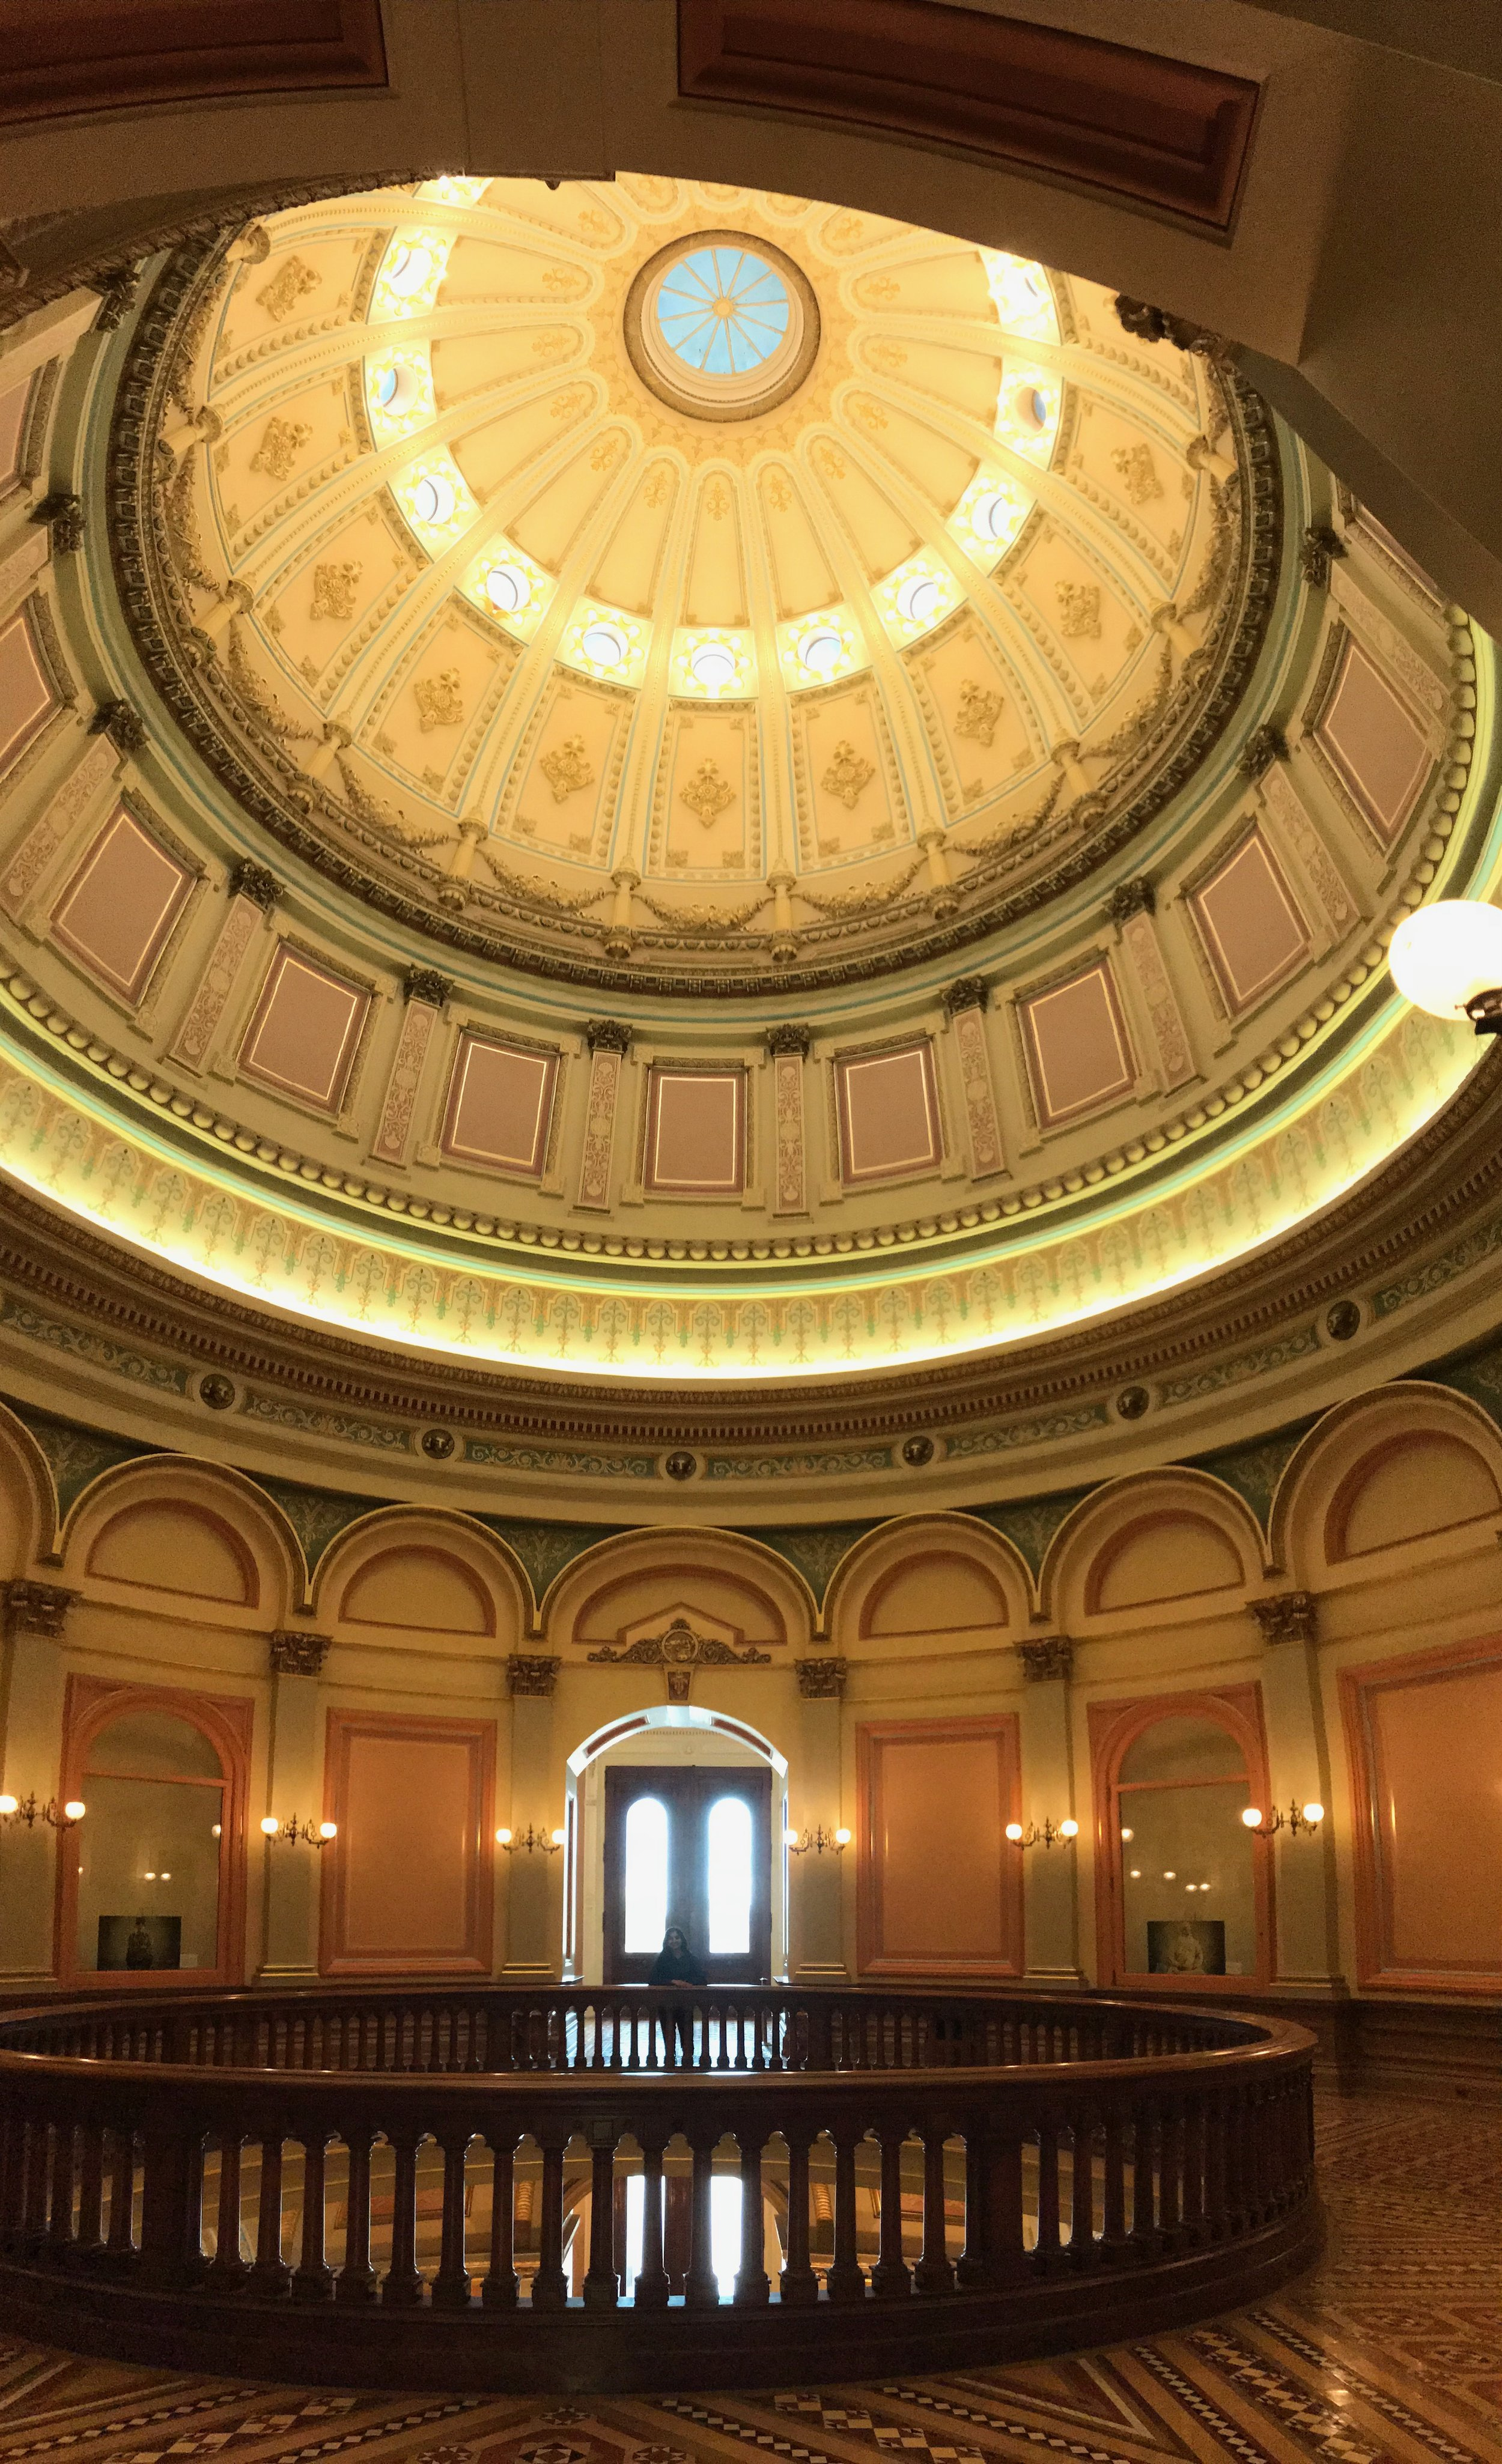 inside state capitol while lobbying on behalf of the BFC and other California free clinics